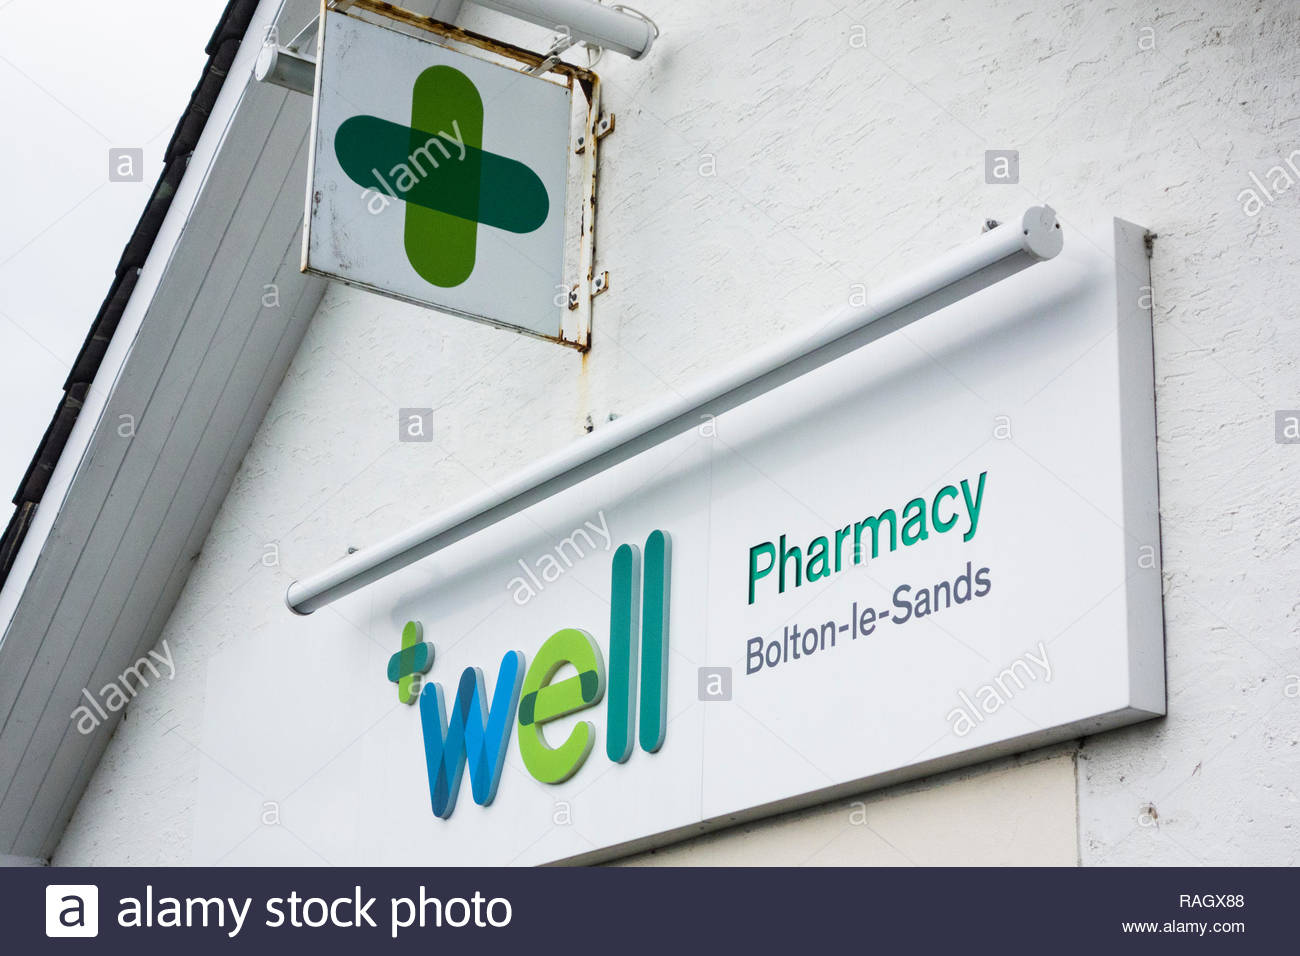 The Well Pharmacy, a dispensing chemist in Bolton le Sands, Lancashire, England, UK - Stock Image